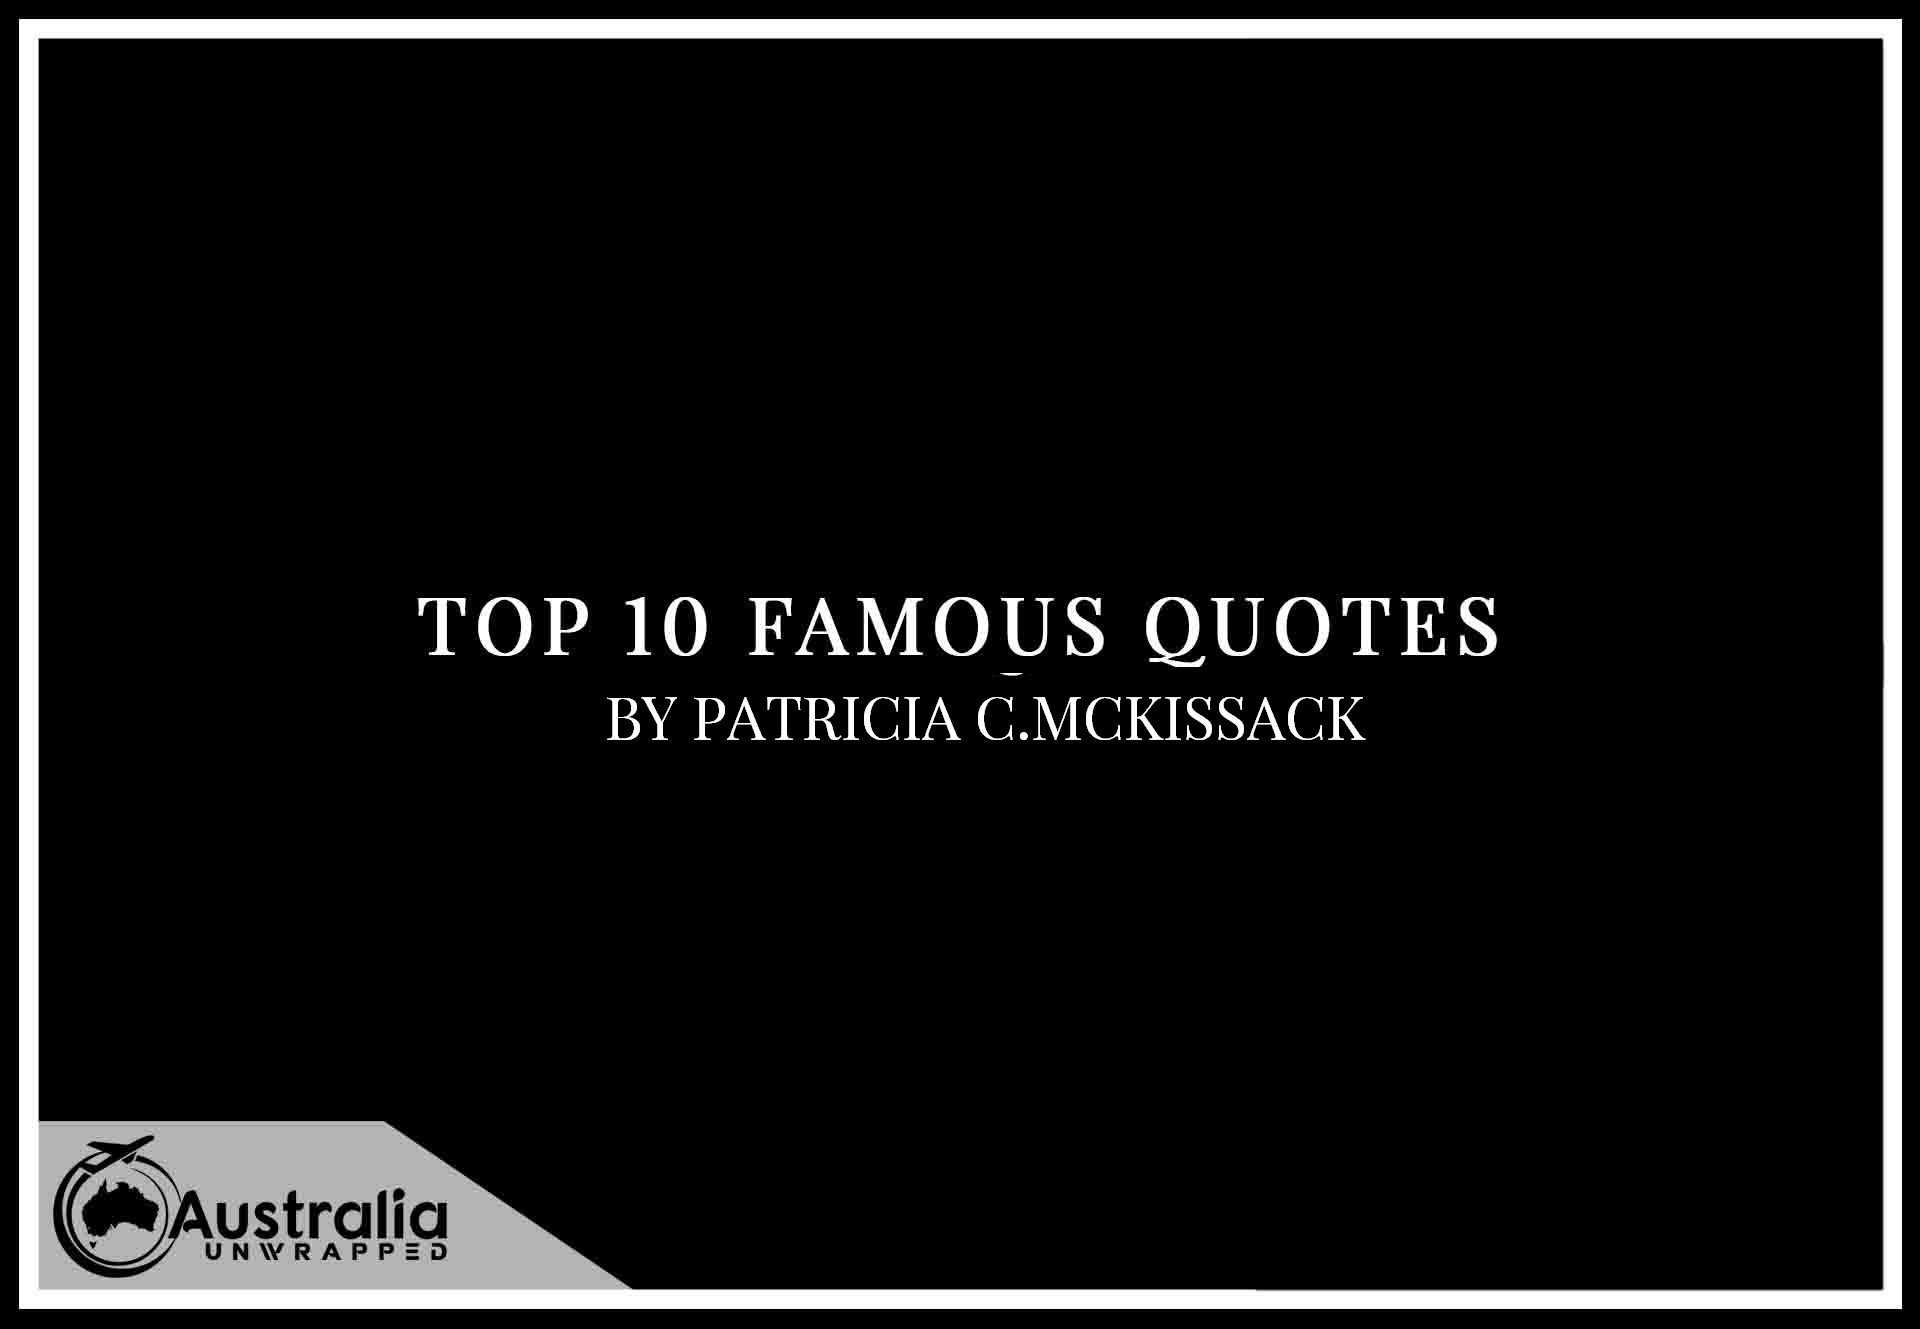 Top 10 Famous Quotes by Author Patricia McKissack